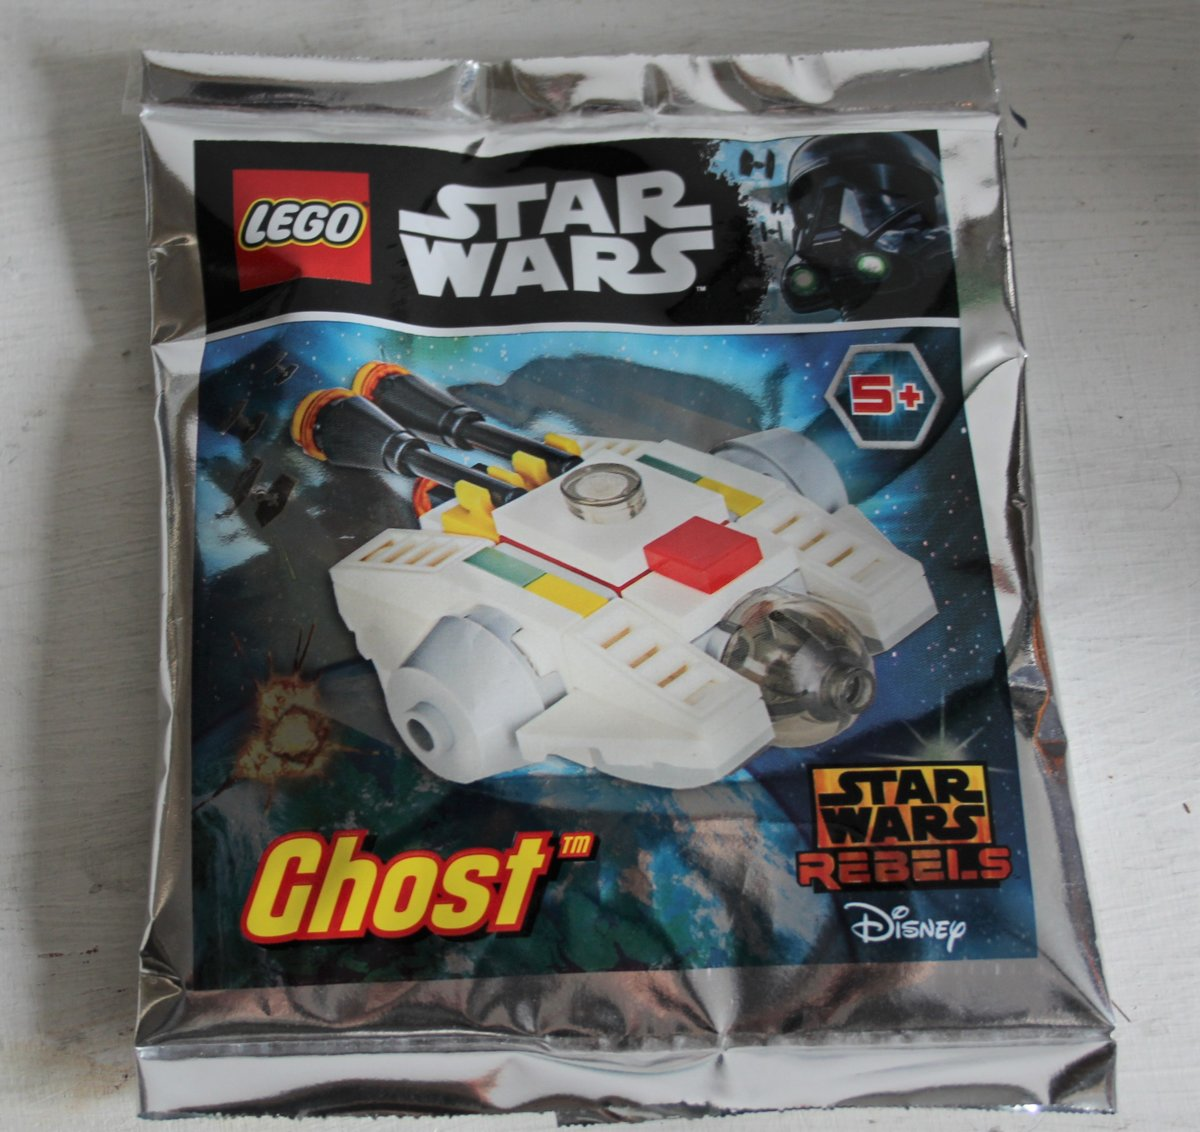 Lego Star Wars Rebels - Ghost ship (polybag)